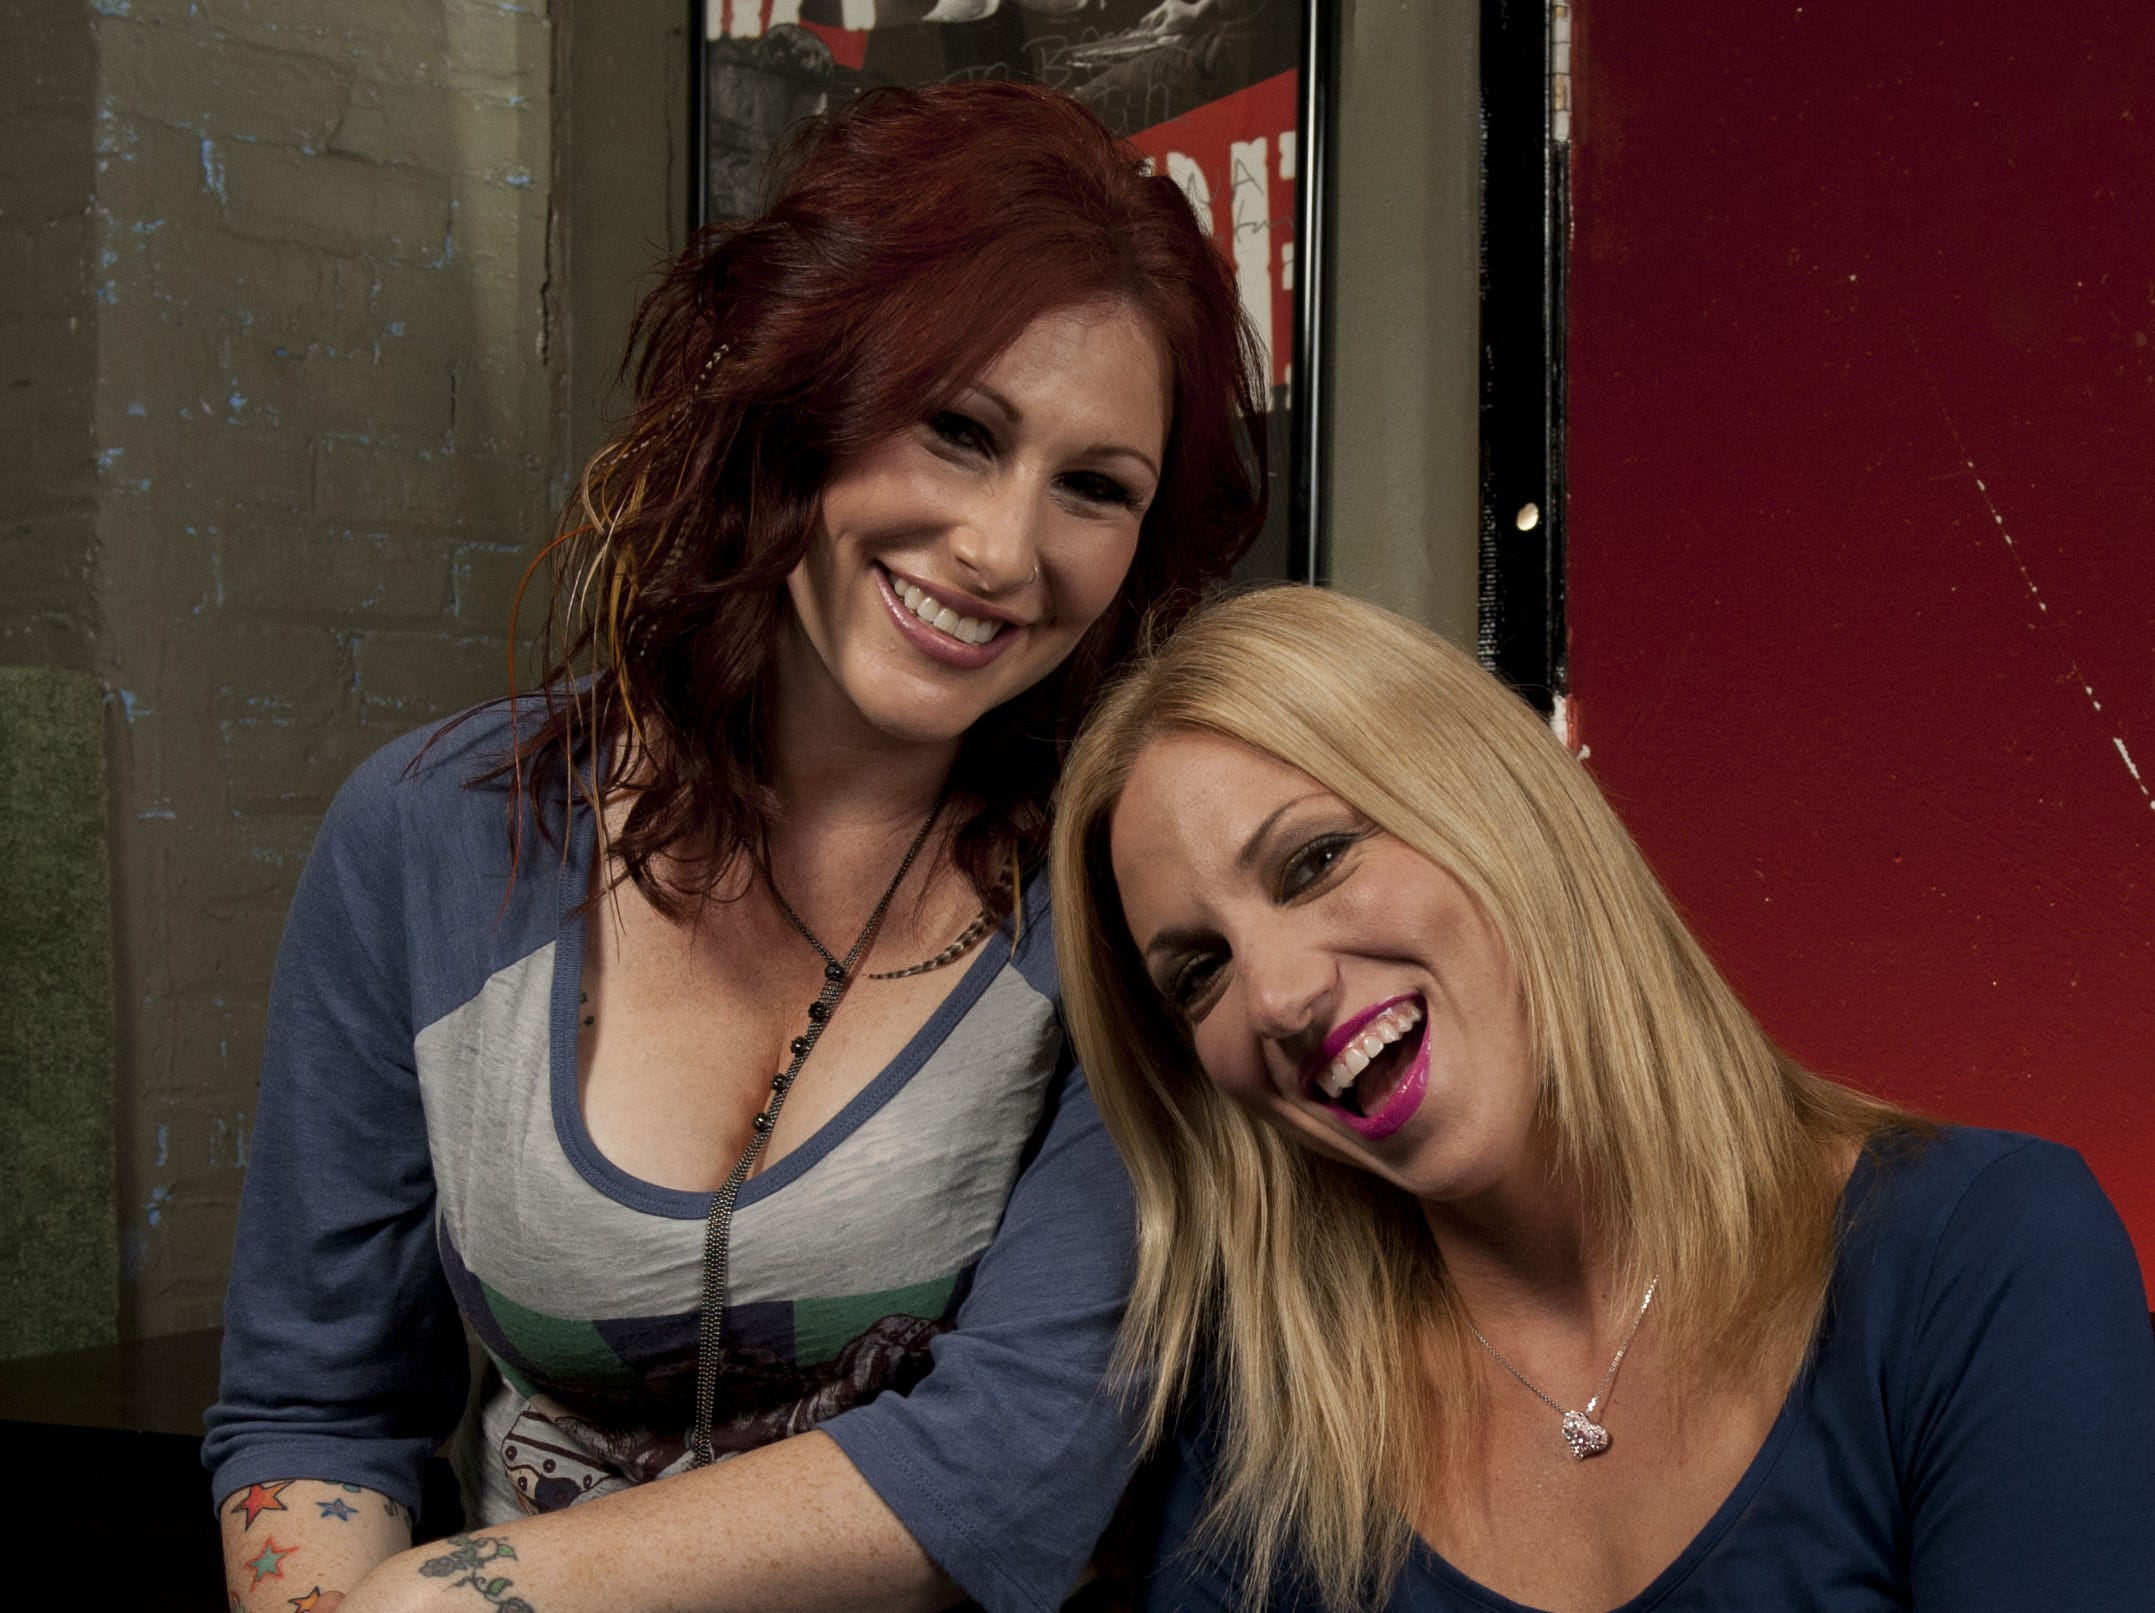 """ORG XMIT: EB 40532 Debbie Gibson Ti 7/27/2 7/27/11 3:17:31 PM -- New York, NY, U.S.A  -- '80s stars Tiffany (left) and Debbie Gibson (rt) are getting ready to go on their tour """"A Journey Through the 80's"""".  They are photographed together at Montana Studios in New York City. Photo by Eileen Blass, USA TODAY staff  [Via MerlinFTP Drop]"""